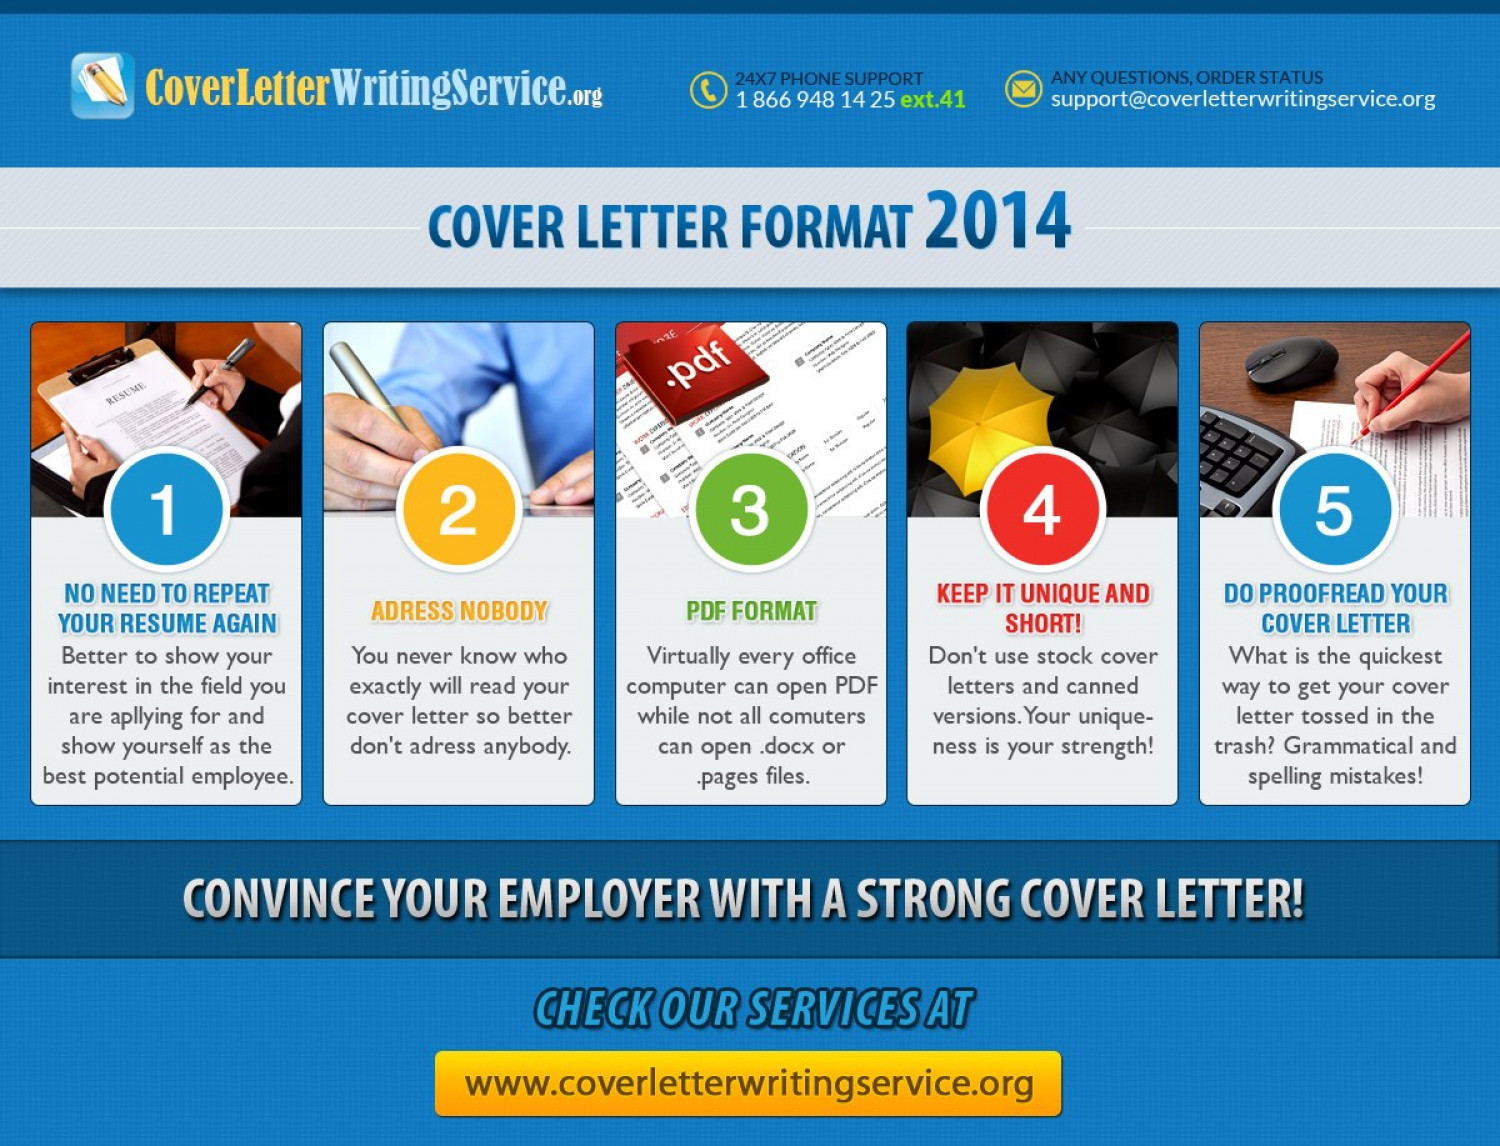 Cover letter format 2014 visual cover letter format 2014 infographic madrichimfo Images